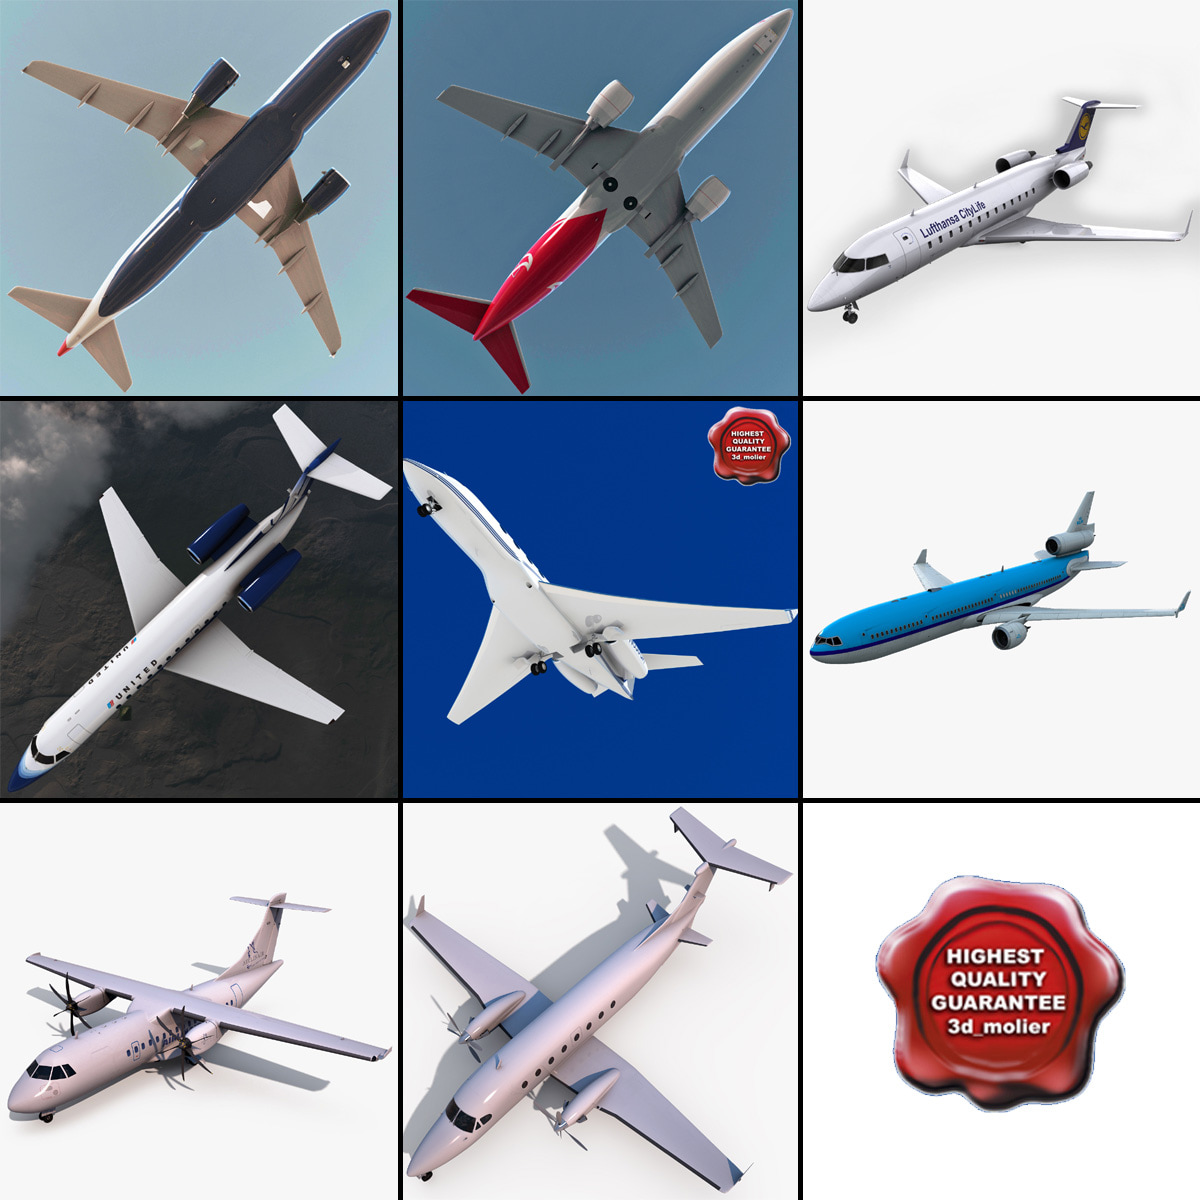 Airplanes copy.jpg